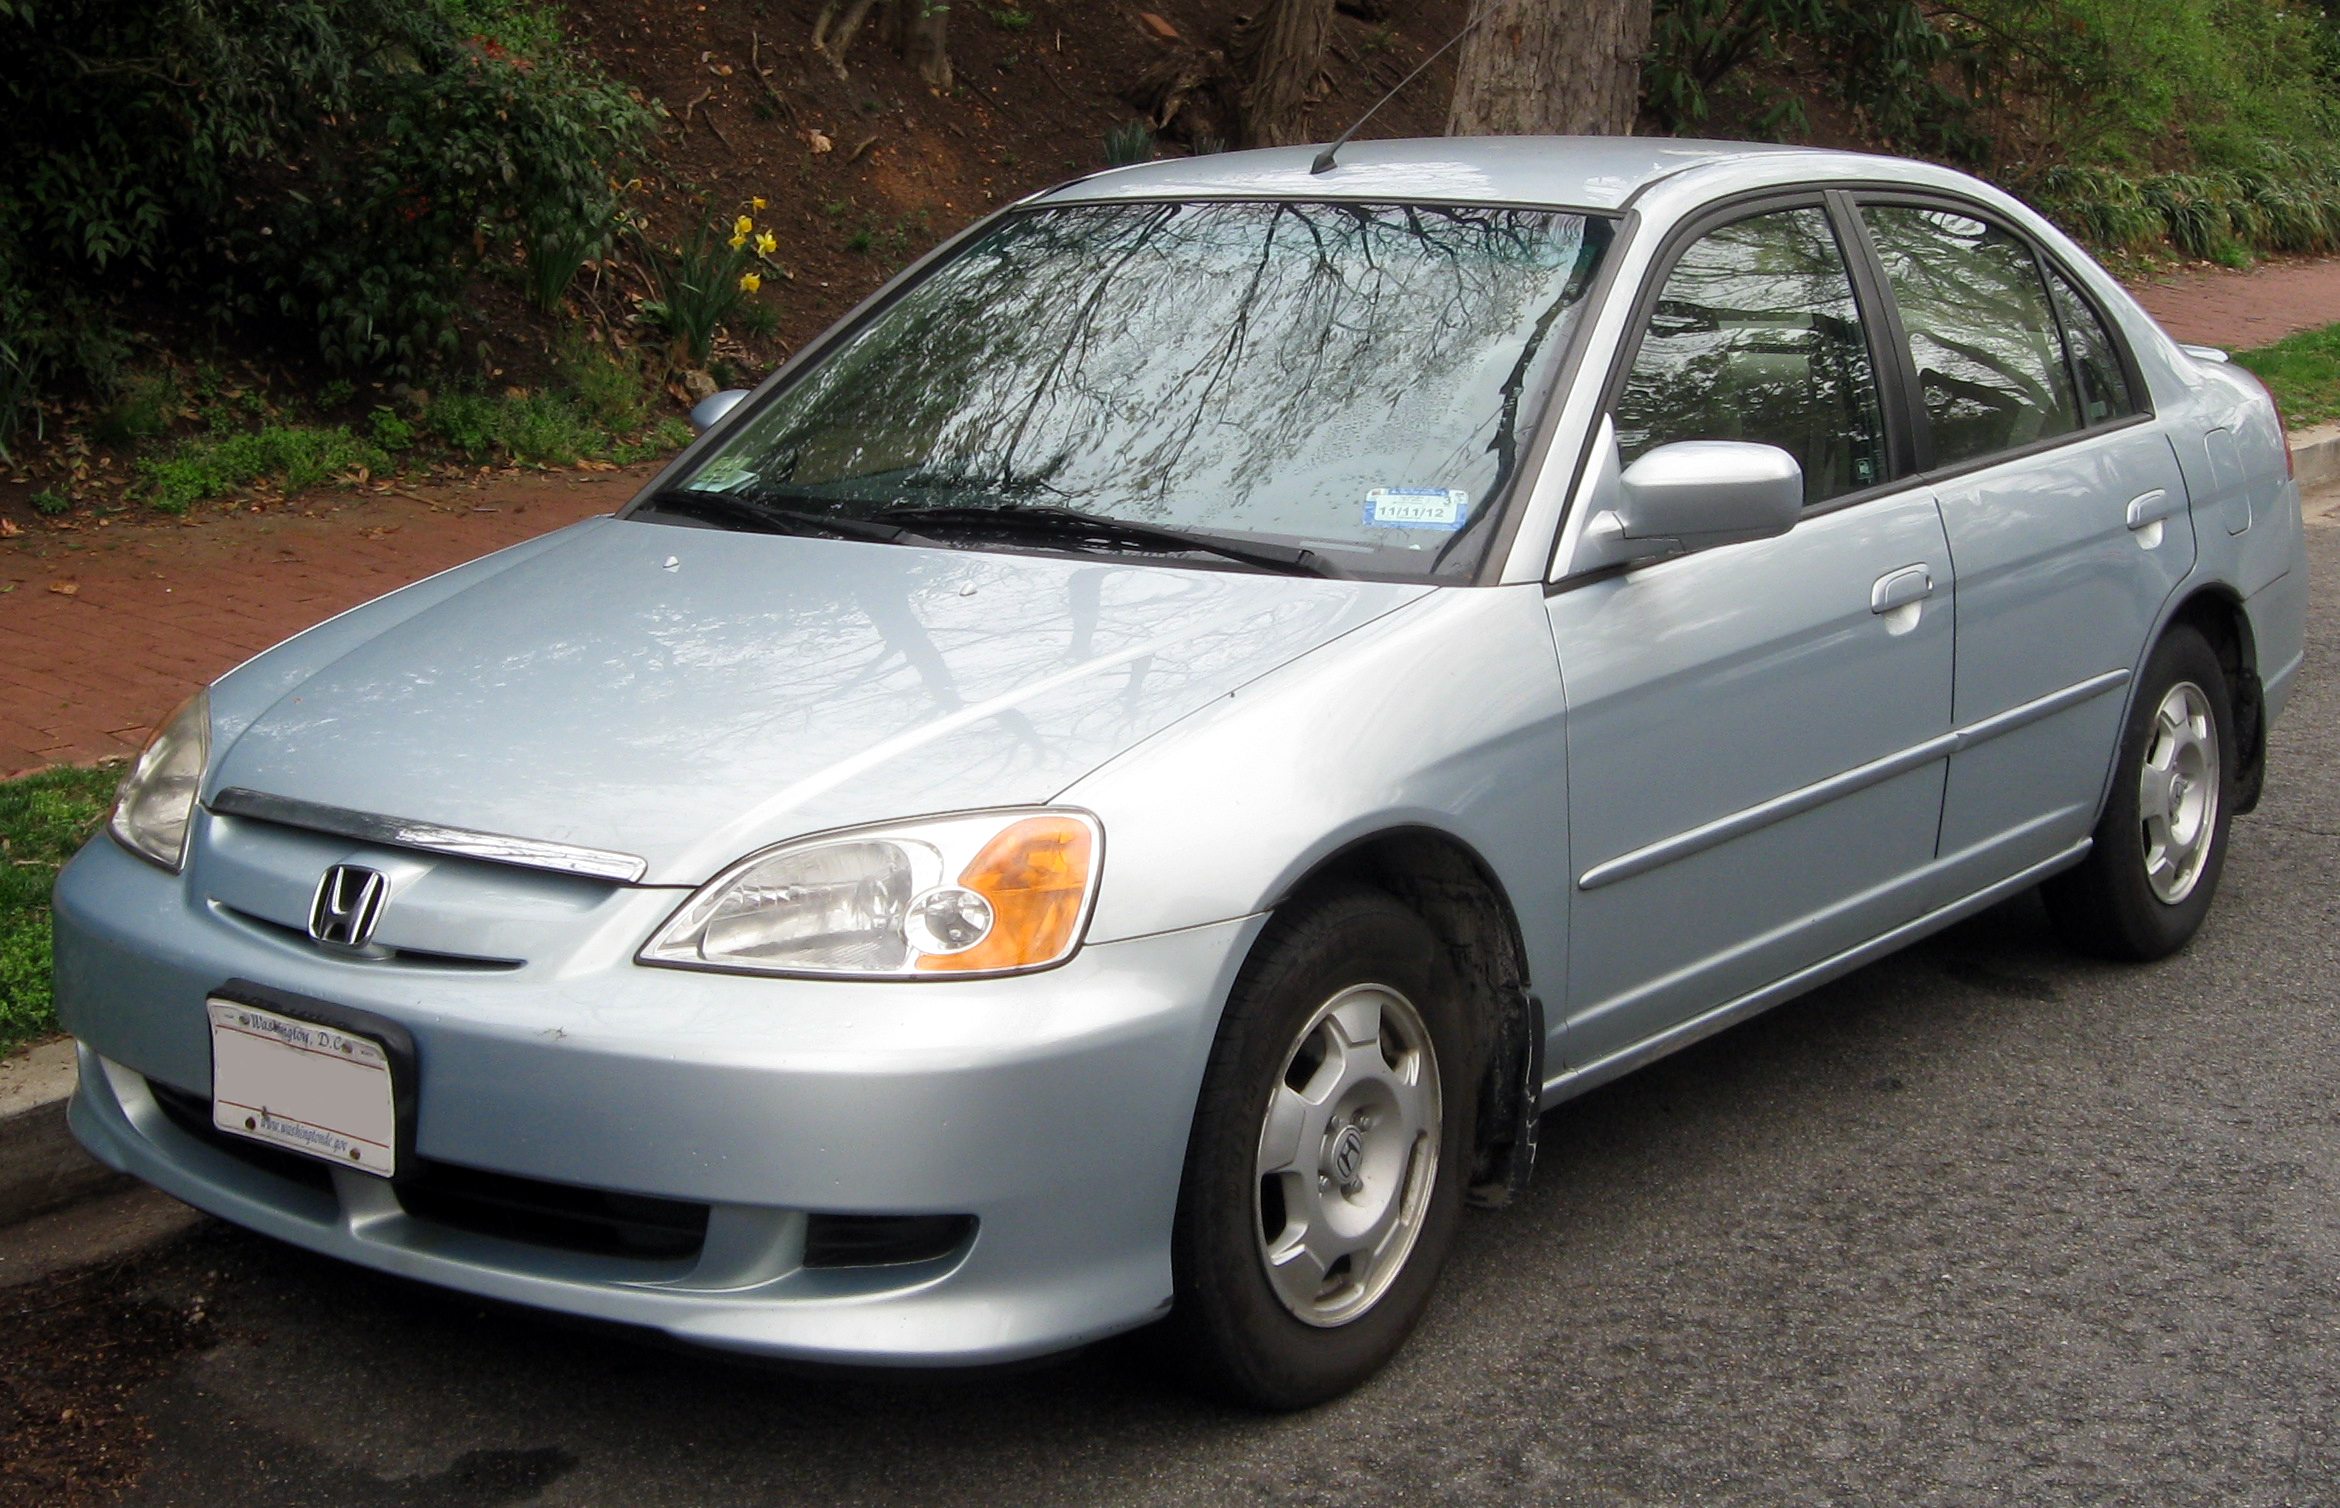 file 2003 honda civic hybrid 03 21 2012 jpg wikipedia. Black Bedroom Furniture Sets. Home Design Ideas